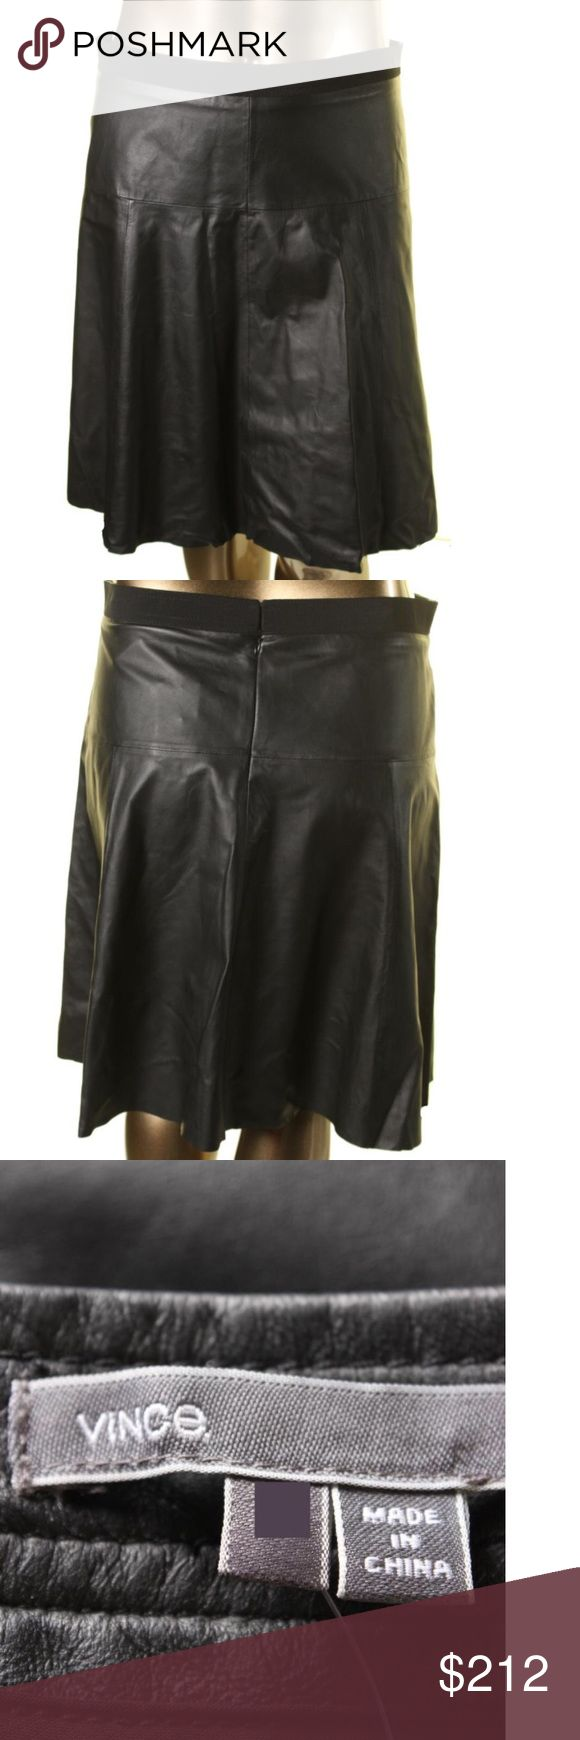 VINCE $695* Black Lamb Leather A-Line Skirt VINCE Black Lamb Leather Knee-Length A-Line Skirt Vince Skirts A-Line or Full